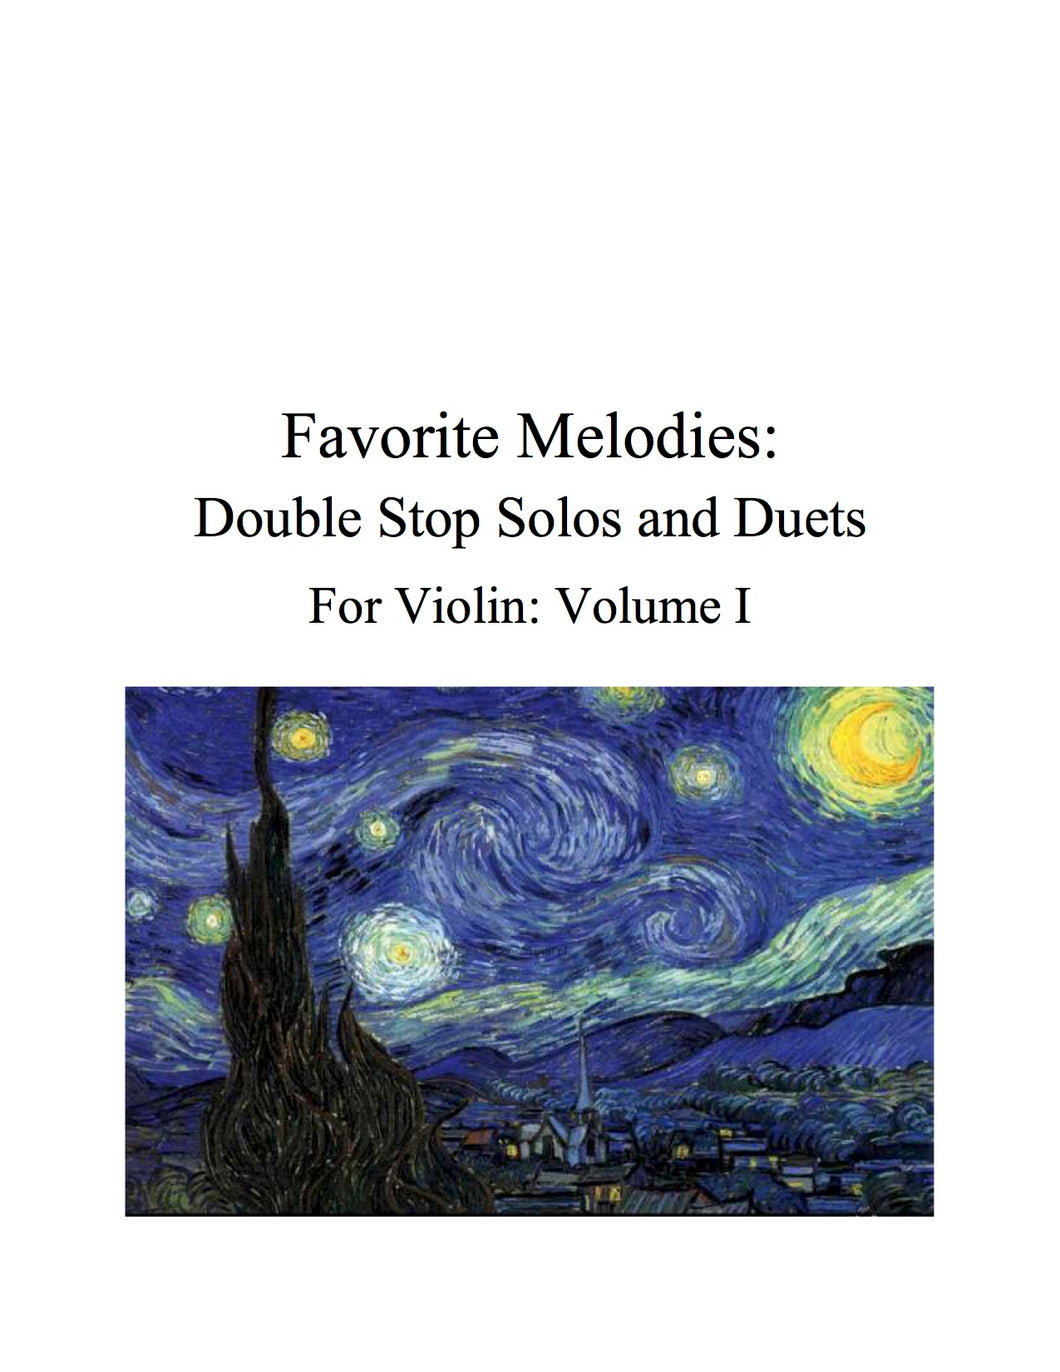 084 - Favorite Melodies I: Double Stop Solos and Duets for Violin (with 10 Suzuki Bk. I pieces)